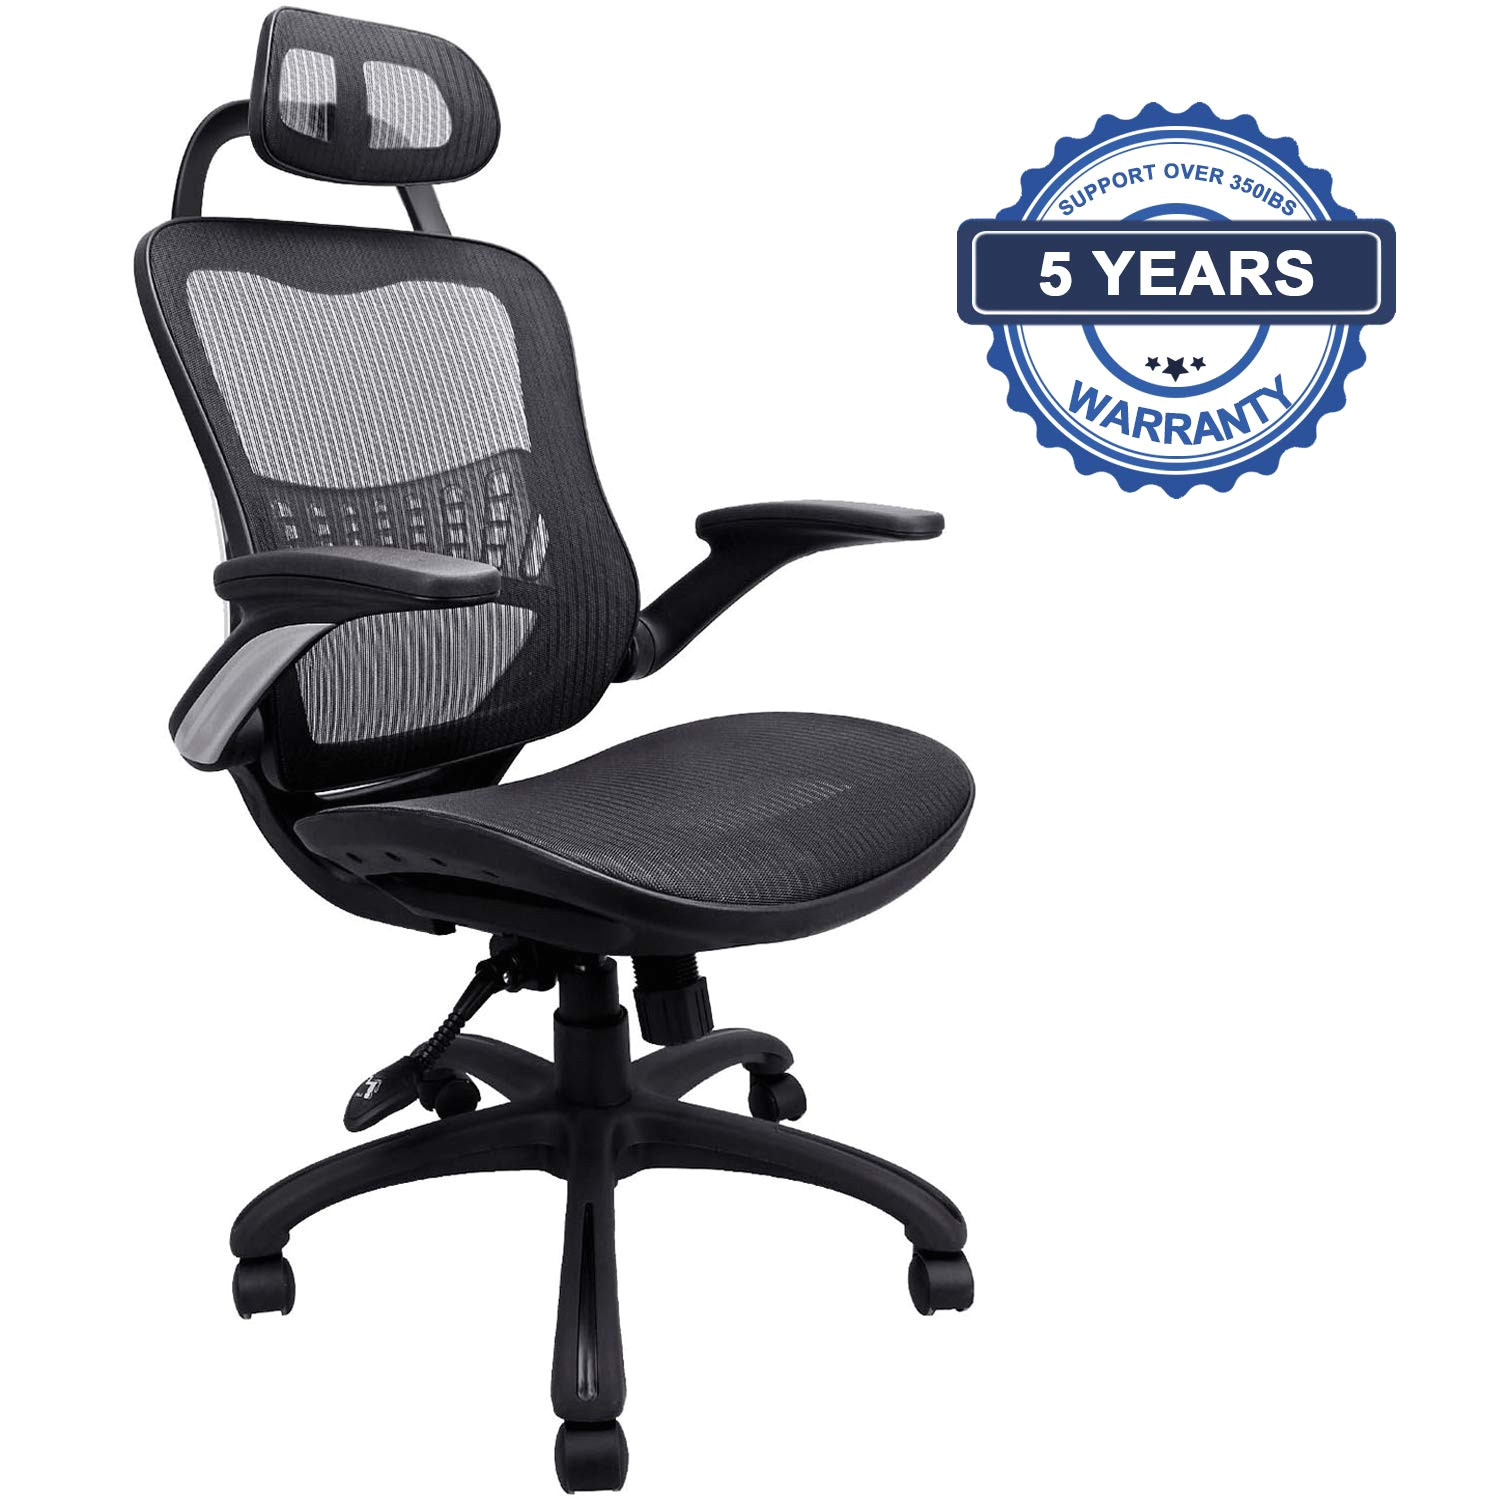 komene ergonomic office chair weight capacity over 350ibs unique breathable mesh cushion high back executive chairs with adjustable headrest backrest